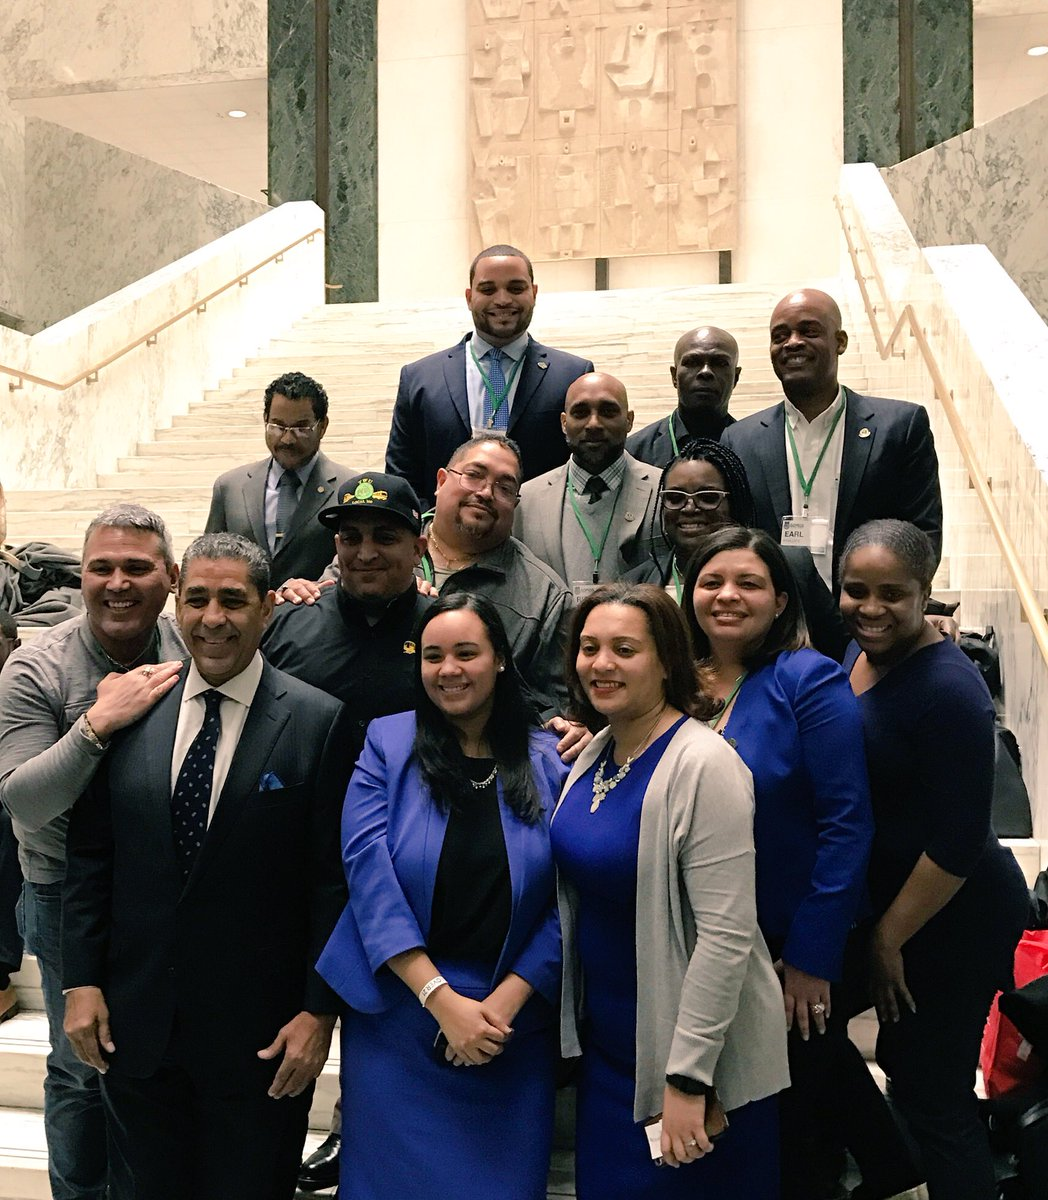 @TWULocal100 with @RepEspaillat @NY31Alcantara @CnDelarosa @SOMOSNEWYORK #Dominican Reception. #1u <br>http://pic.twitter.com/niqjye999f &ndash; à The Well of the LOB